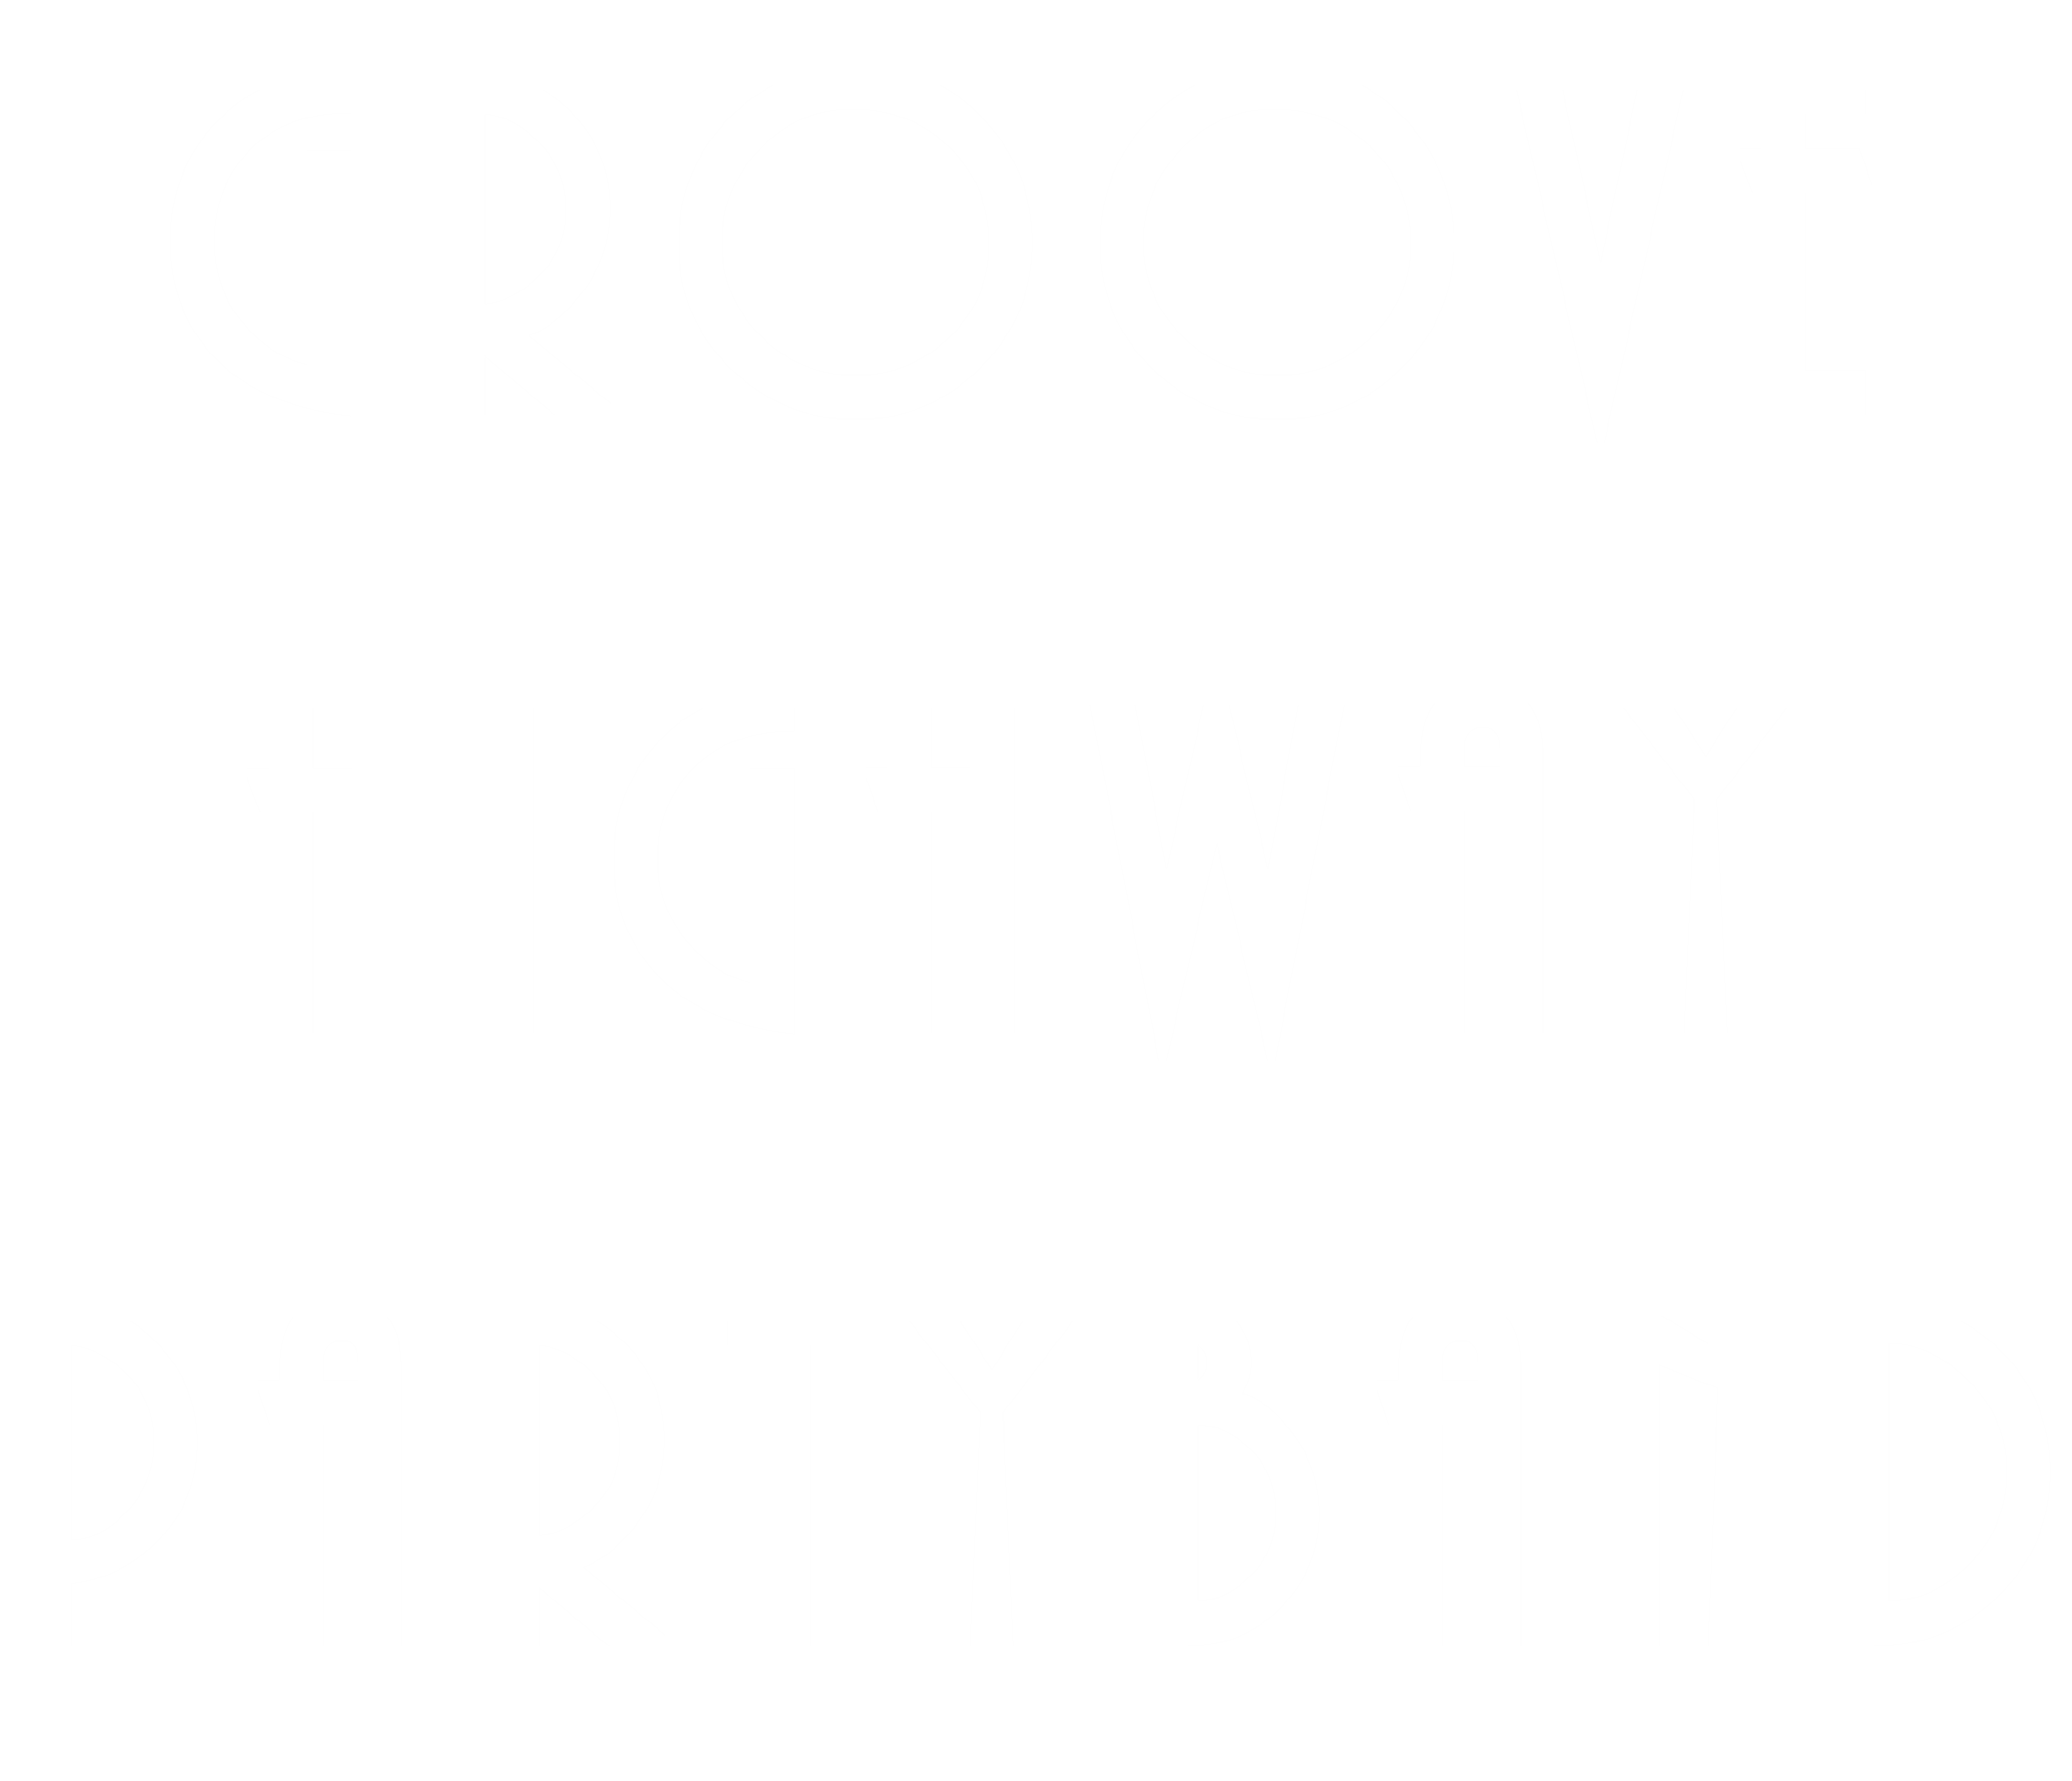 Groove Highway Partyband